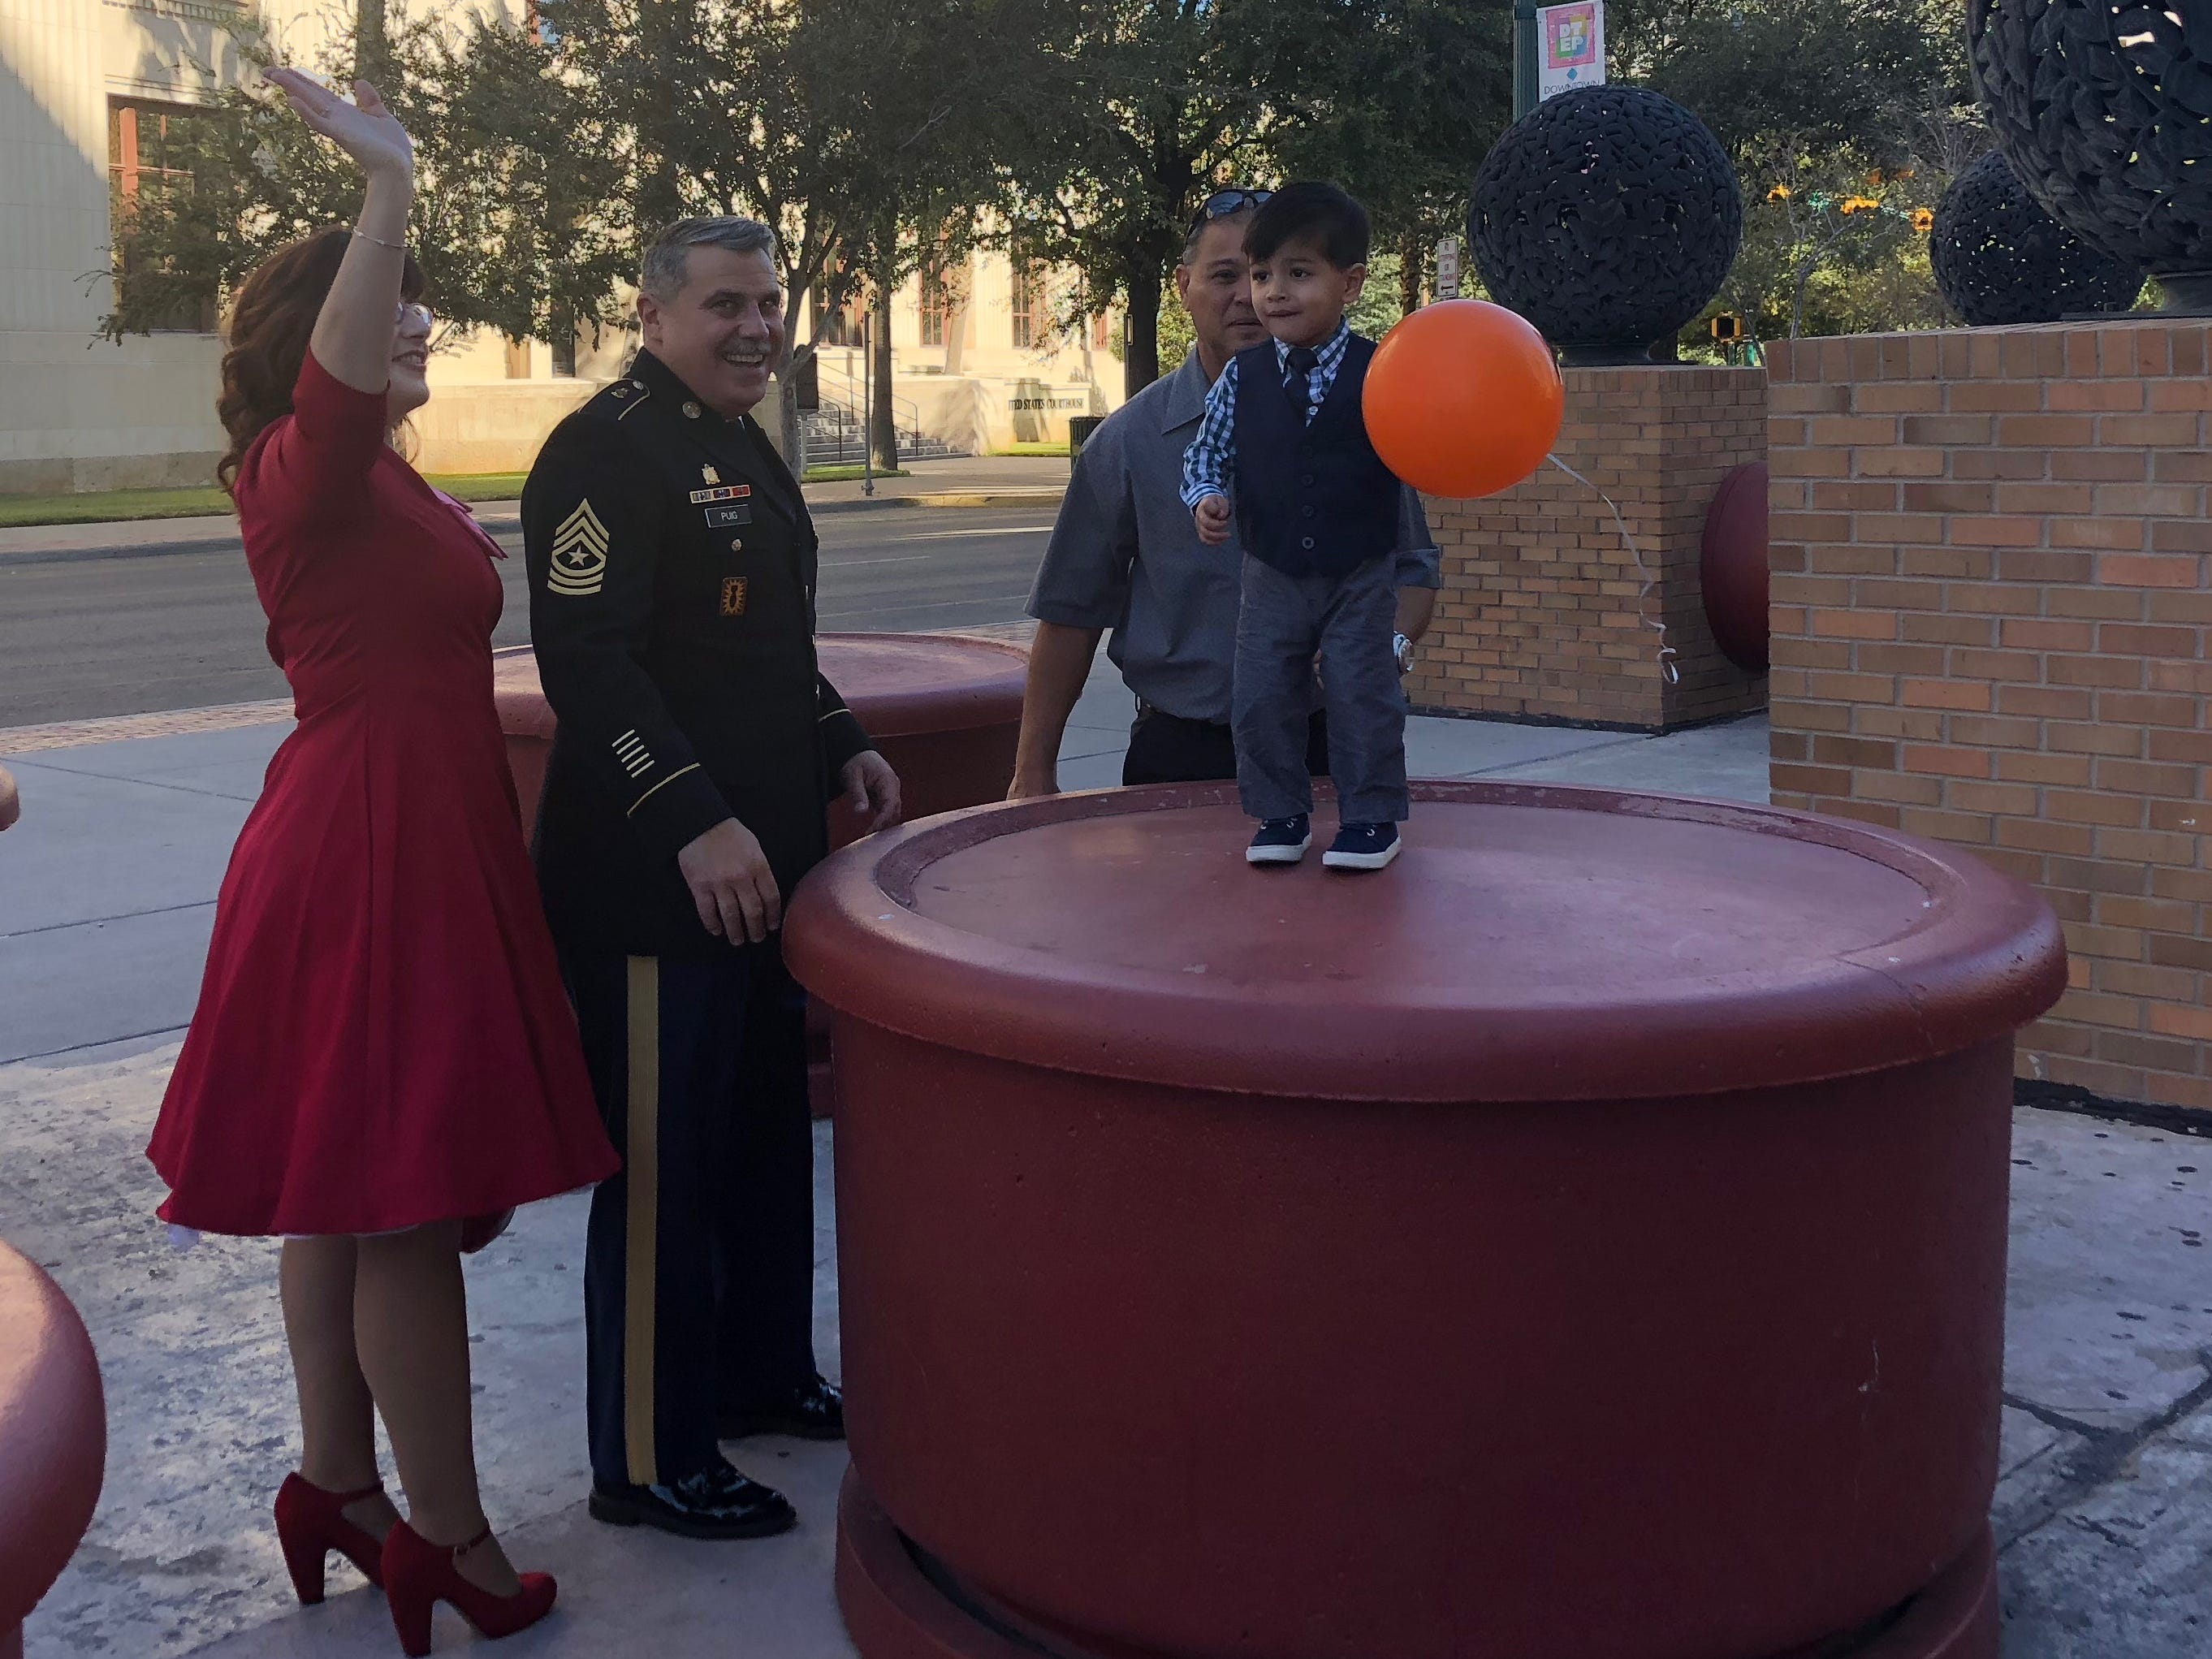 """David Puig and Linda Lopez-Puig celebrate Saturday, Nov. 17, 2018, after officially adopting Ayden at the El Paso County Courthouse. They had taken in Ayden as a foster child while he was recovering from a life-threatening situation. Puig is a soldier and teacher at the Sergeants Major Academy and Lopez-Puig is a homemaker. Puig said he'll retire in El Paso after 35 years in the Army, but they don't know yet if they'll stay here. """"This is our last duty station,"""" Lopez-Puig said. """"We'll go where Ayden needs us to be."""""""